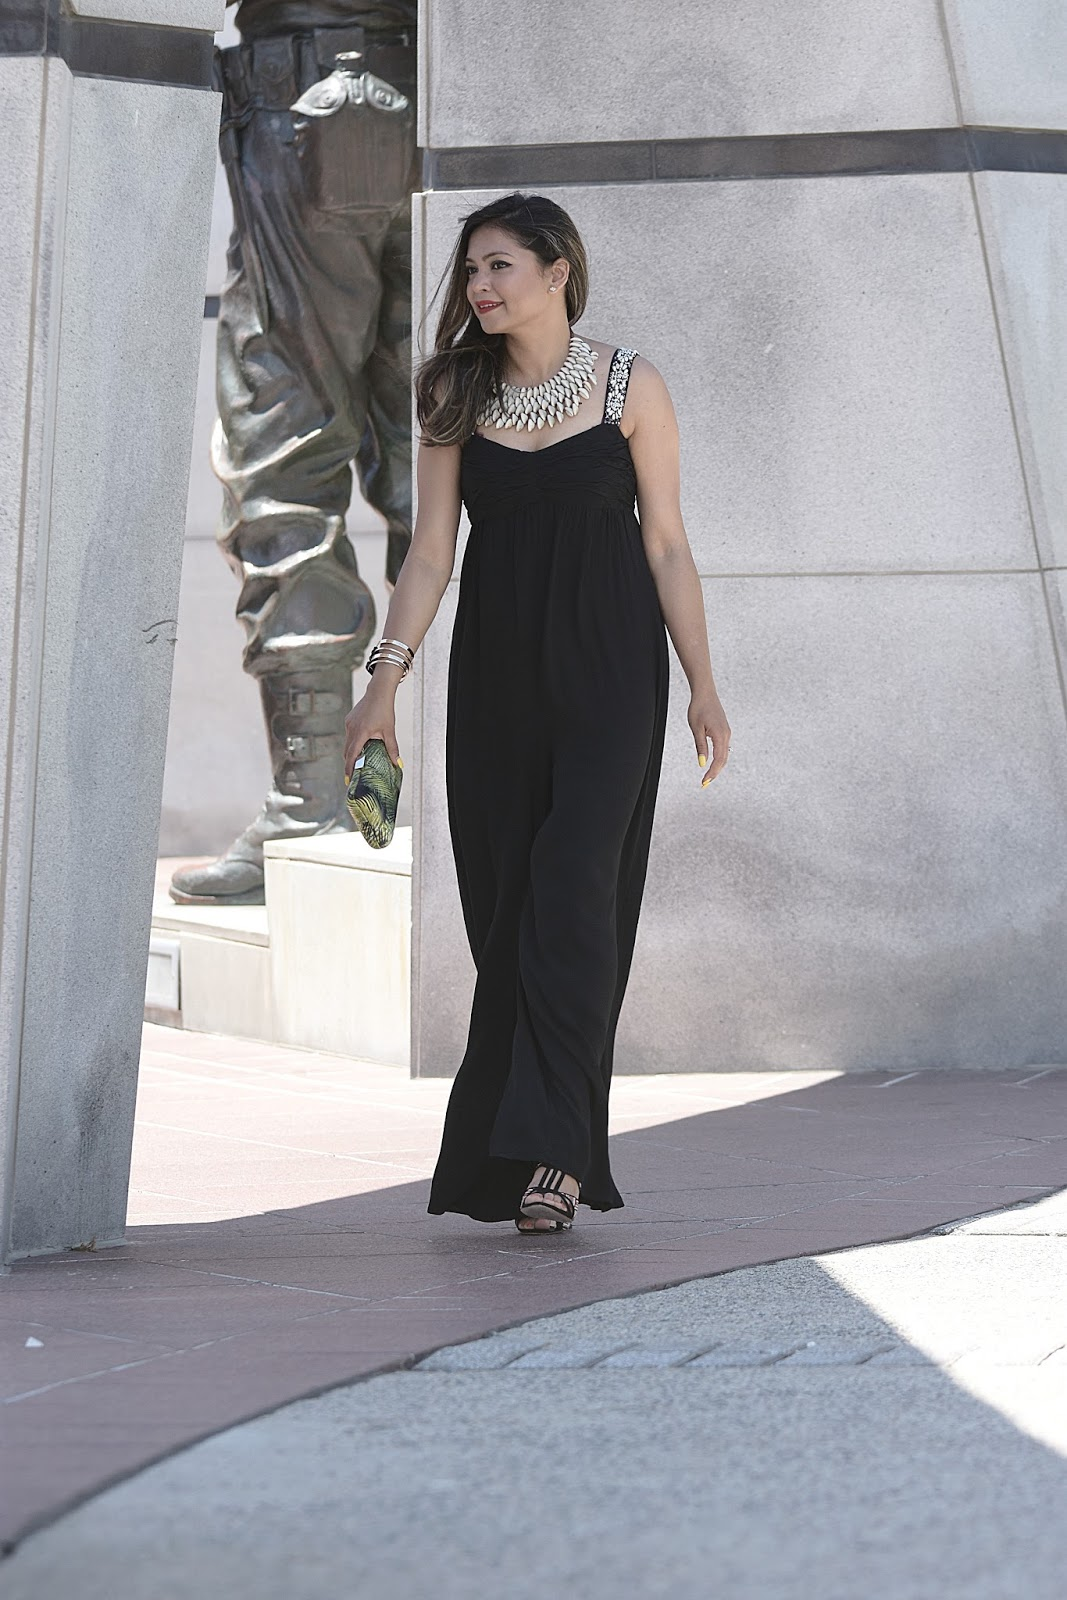 what to wear to a wedding at the beach, black tie, black jumpsuit zara, sequin strap jumpsuit, black dress, LBD, fashion , stylist, street style, myriad musings